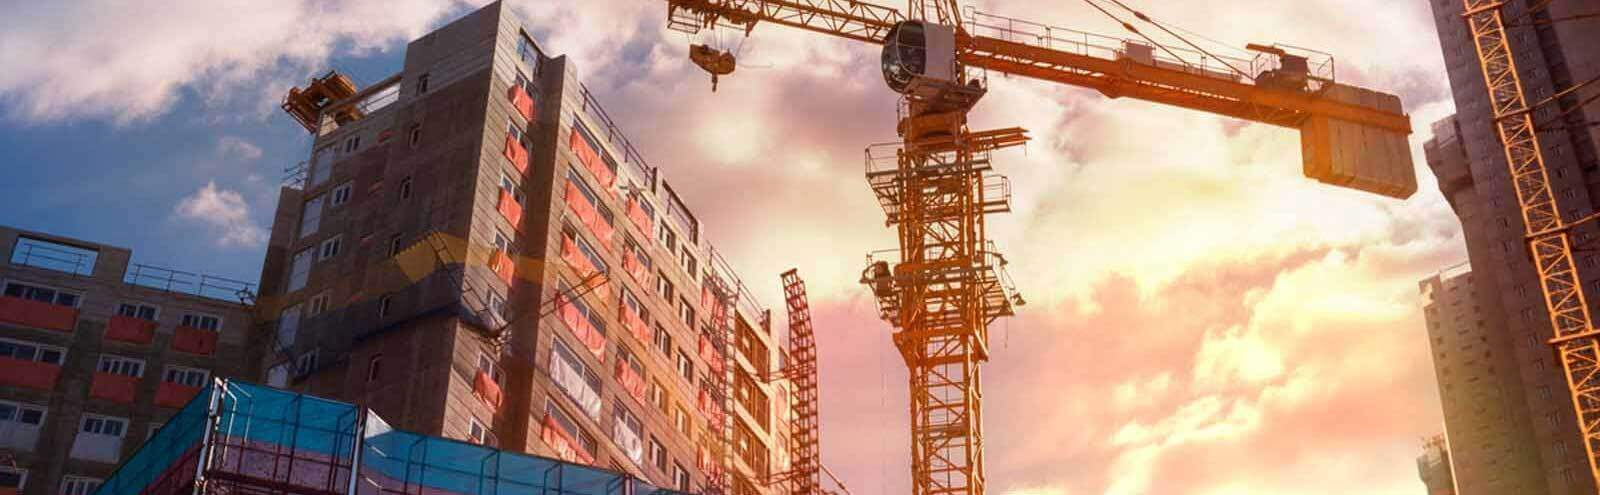 Commercial Remodeling Construction Contractor Covering Arizona